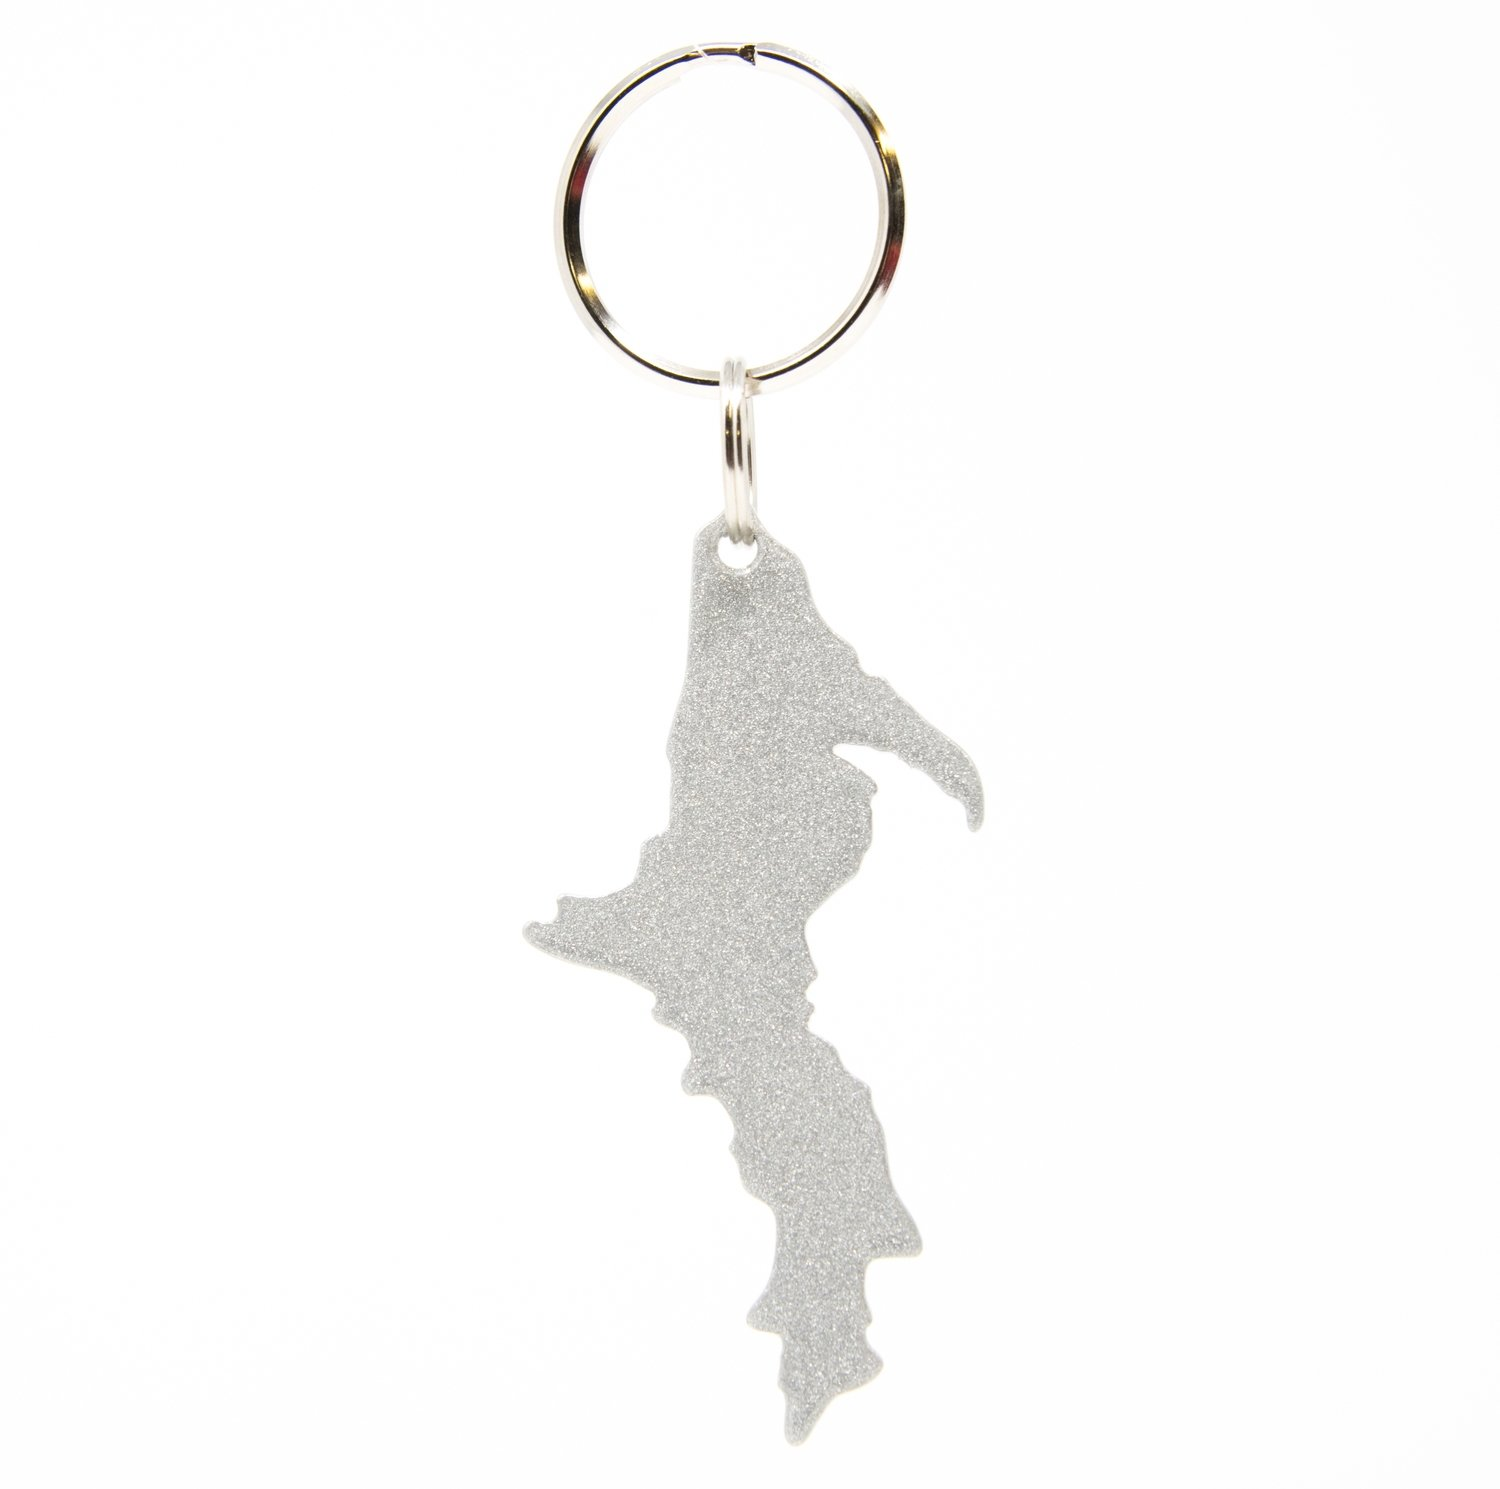 Upper Peninsula Key Chain - Sparkly Silver